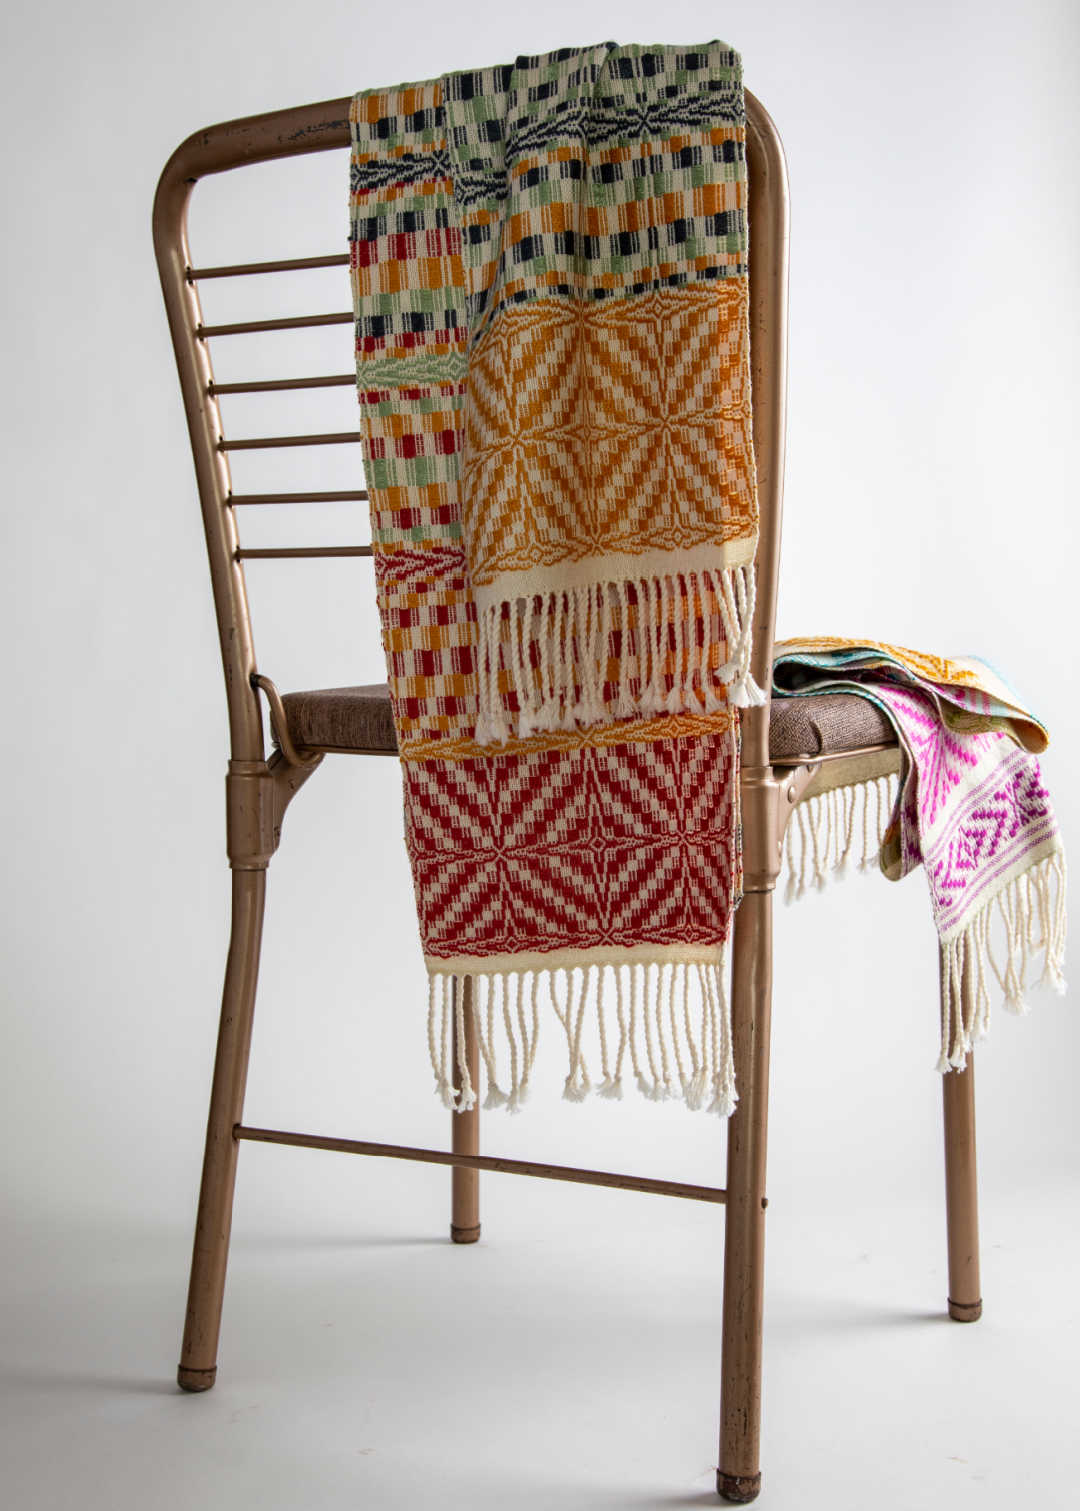 Overshot redux scarf on chair